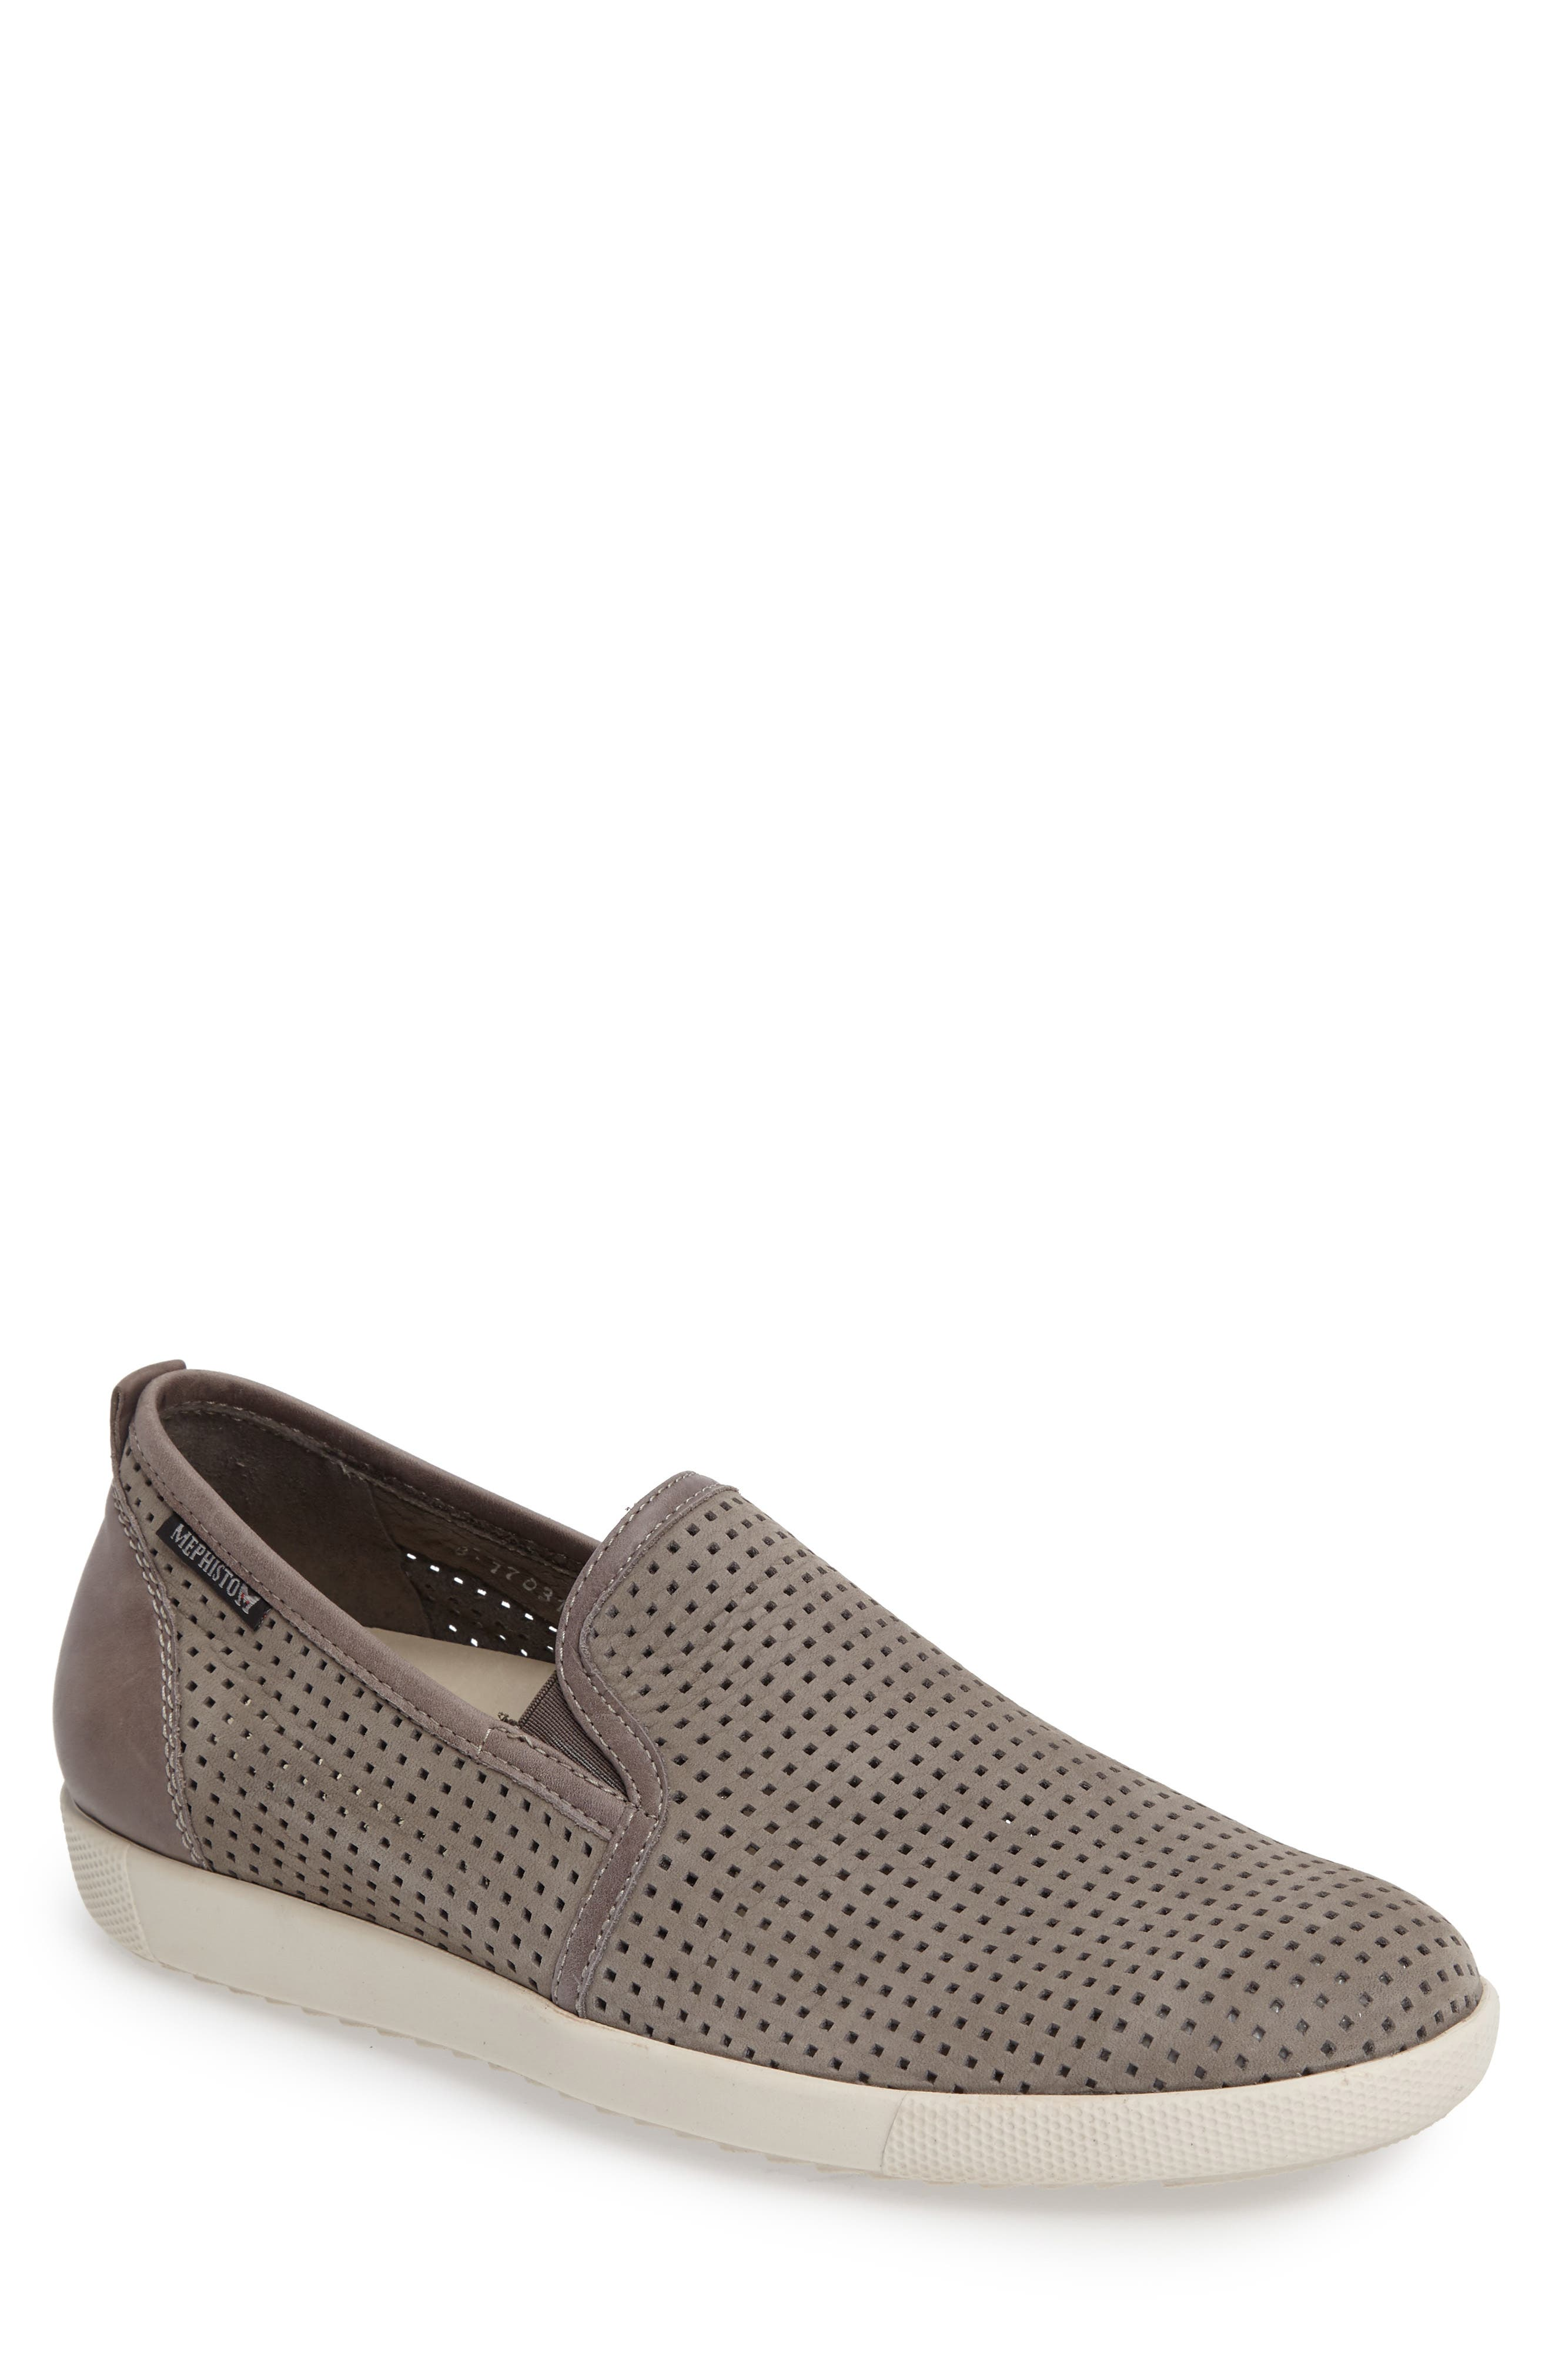 MEPHISTO, 'Ulrich' Perforated Leather Slip-On, Main thumbnail 1, color, LIGHT GREY SPORTBUCK